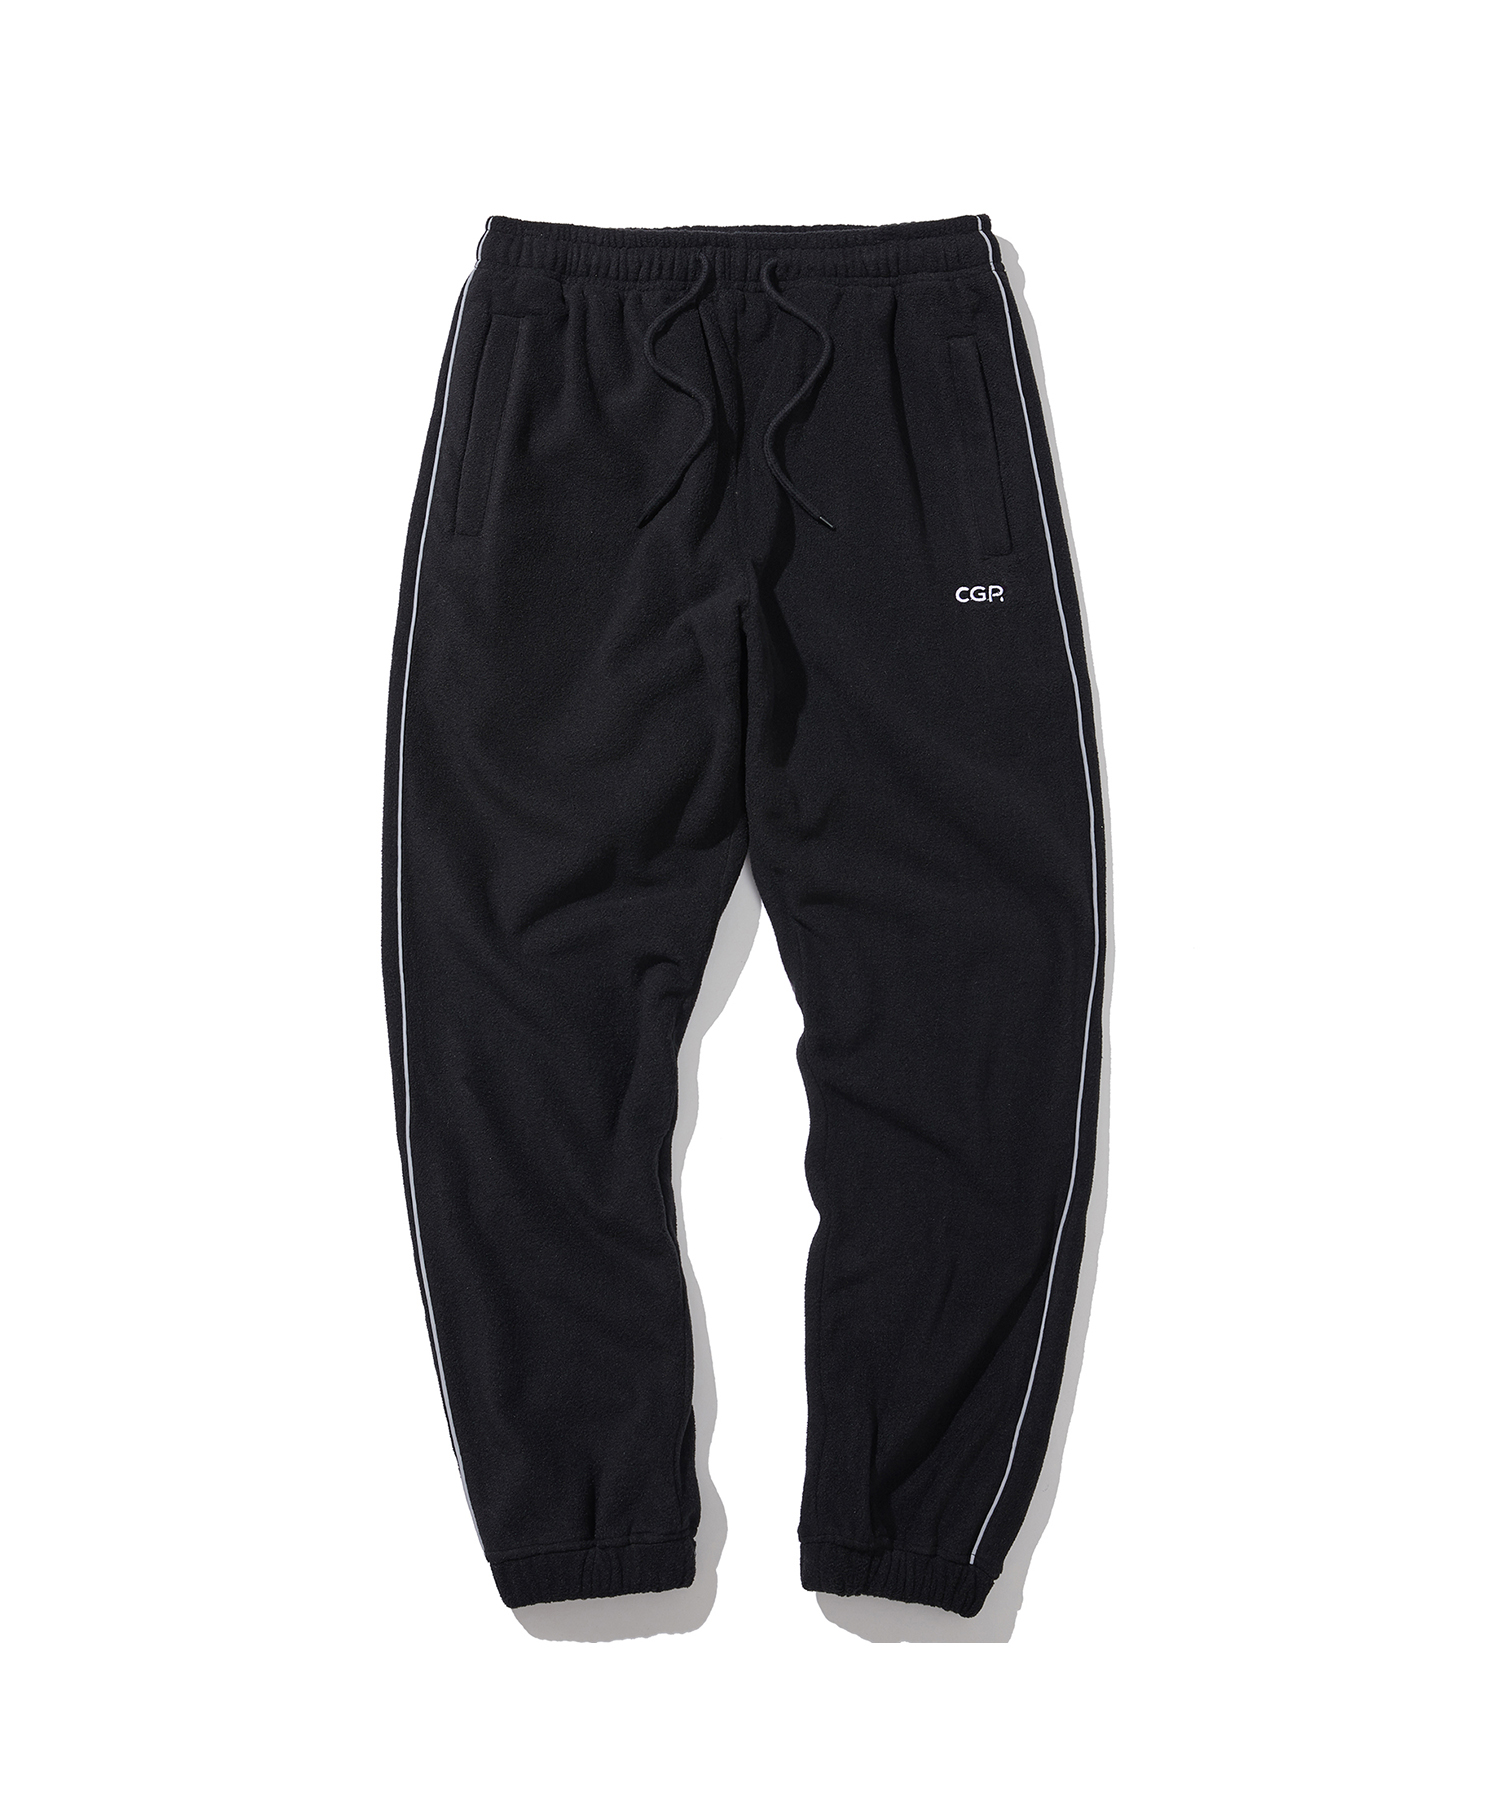 PIPING FLEECE JOGGER PANTS - BK